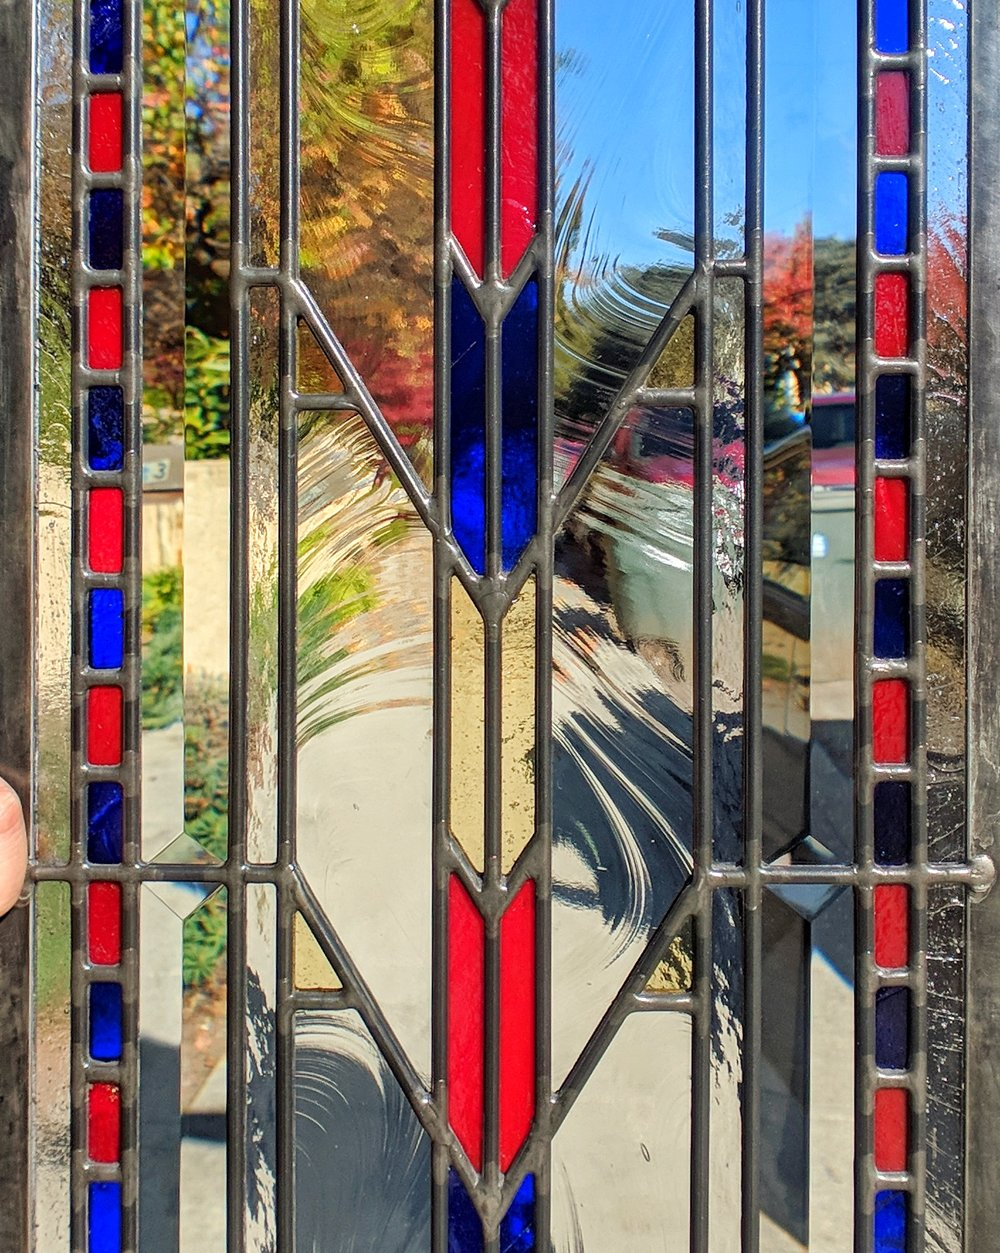 stained glass leaded glass design legacy glass studios menlo park bay area california custom design modern craftsman frank lloyd wright baroque seedy bevels prism rough rolled cathedral glass.JPG